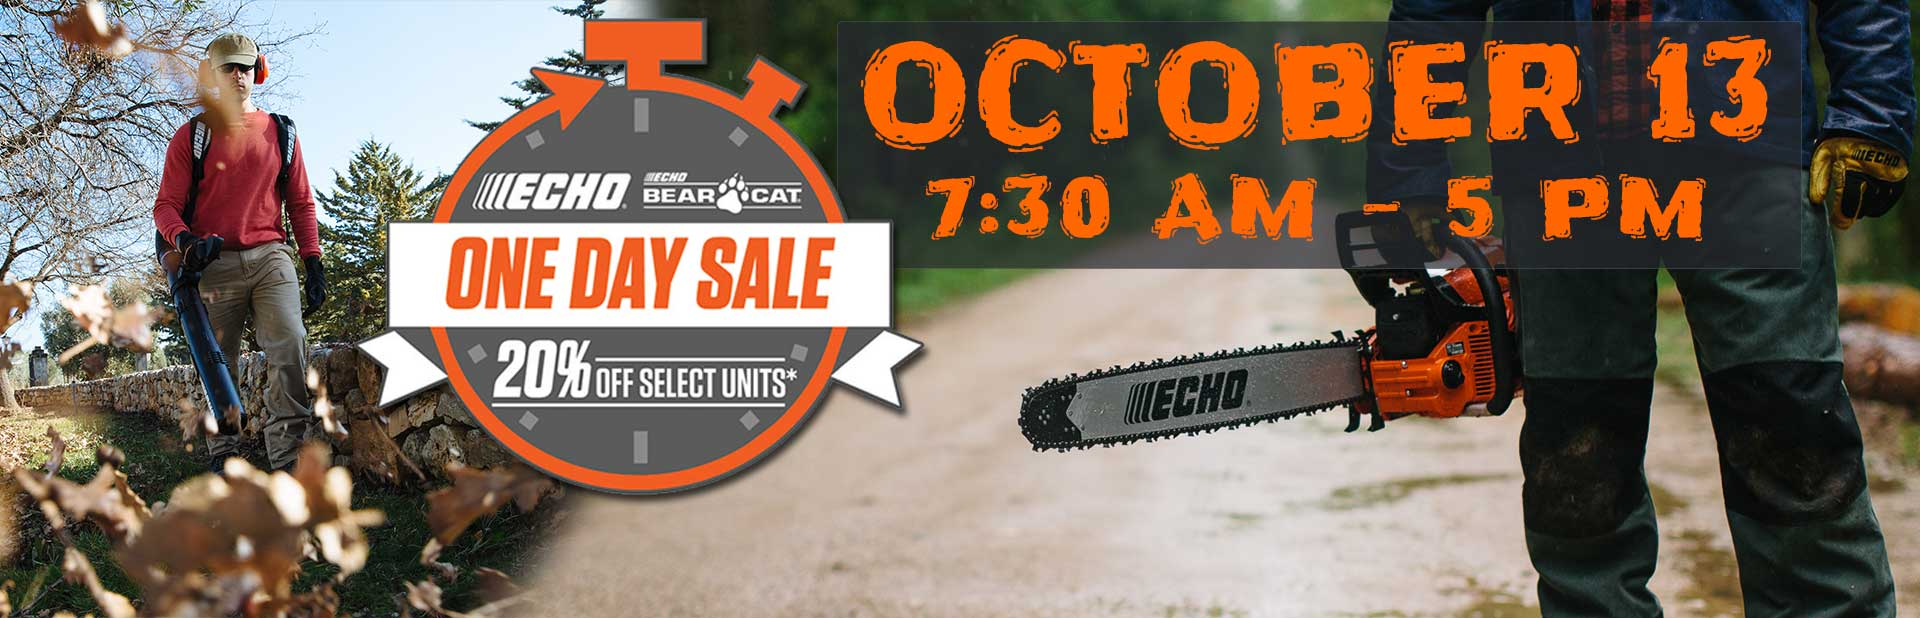 Echo One Day Sale - October 13